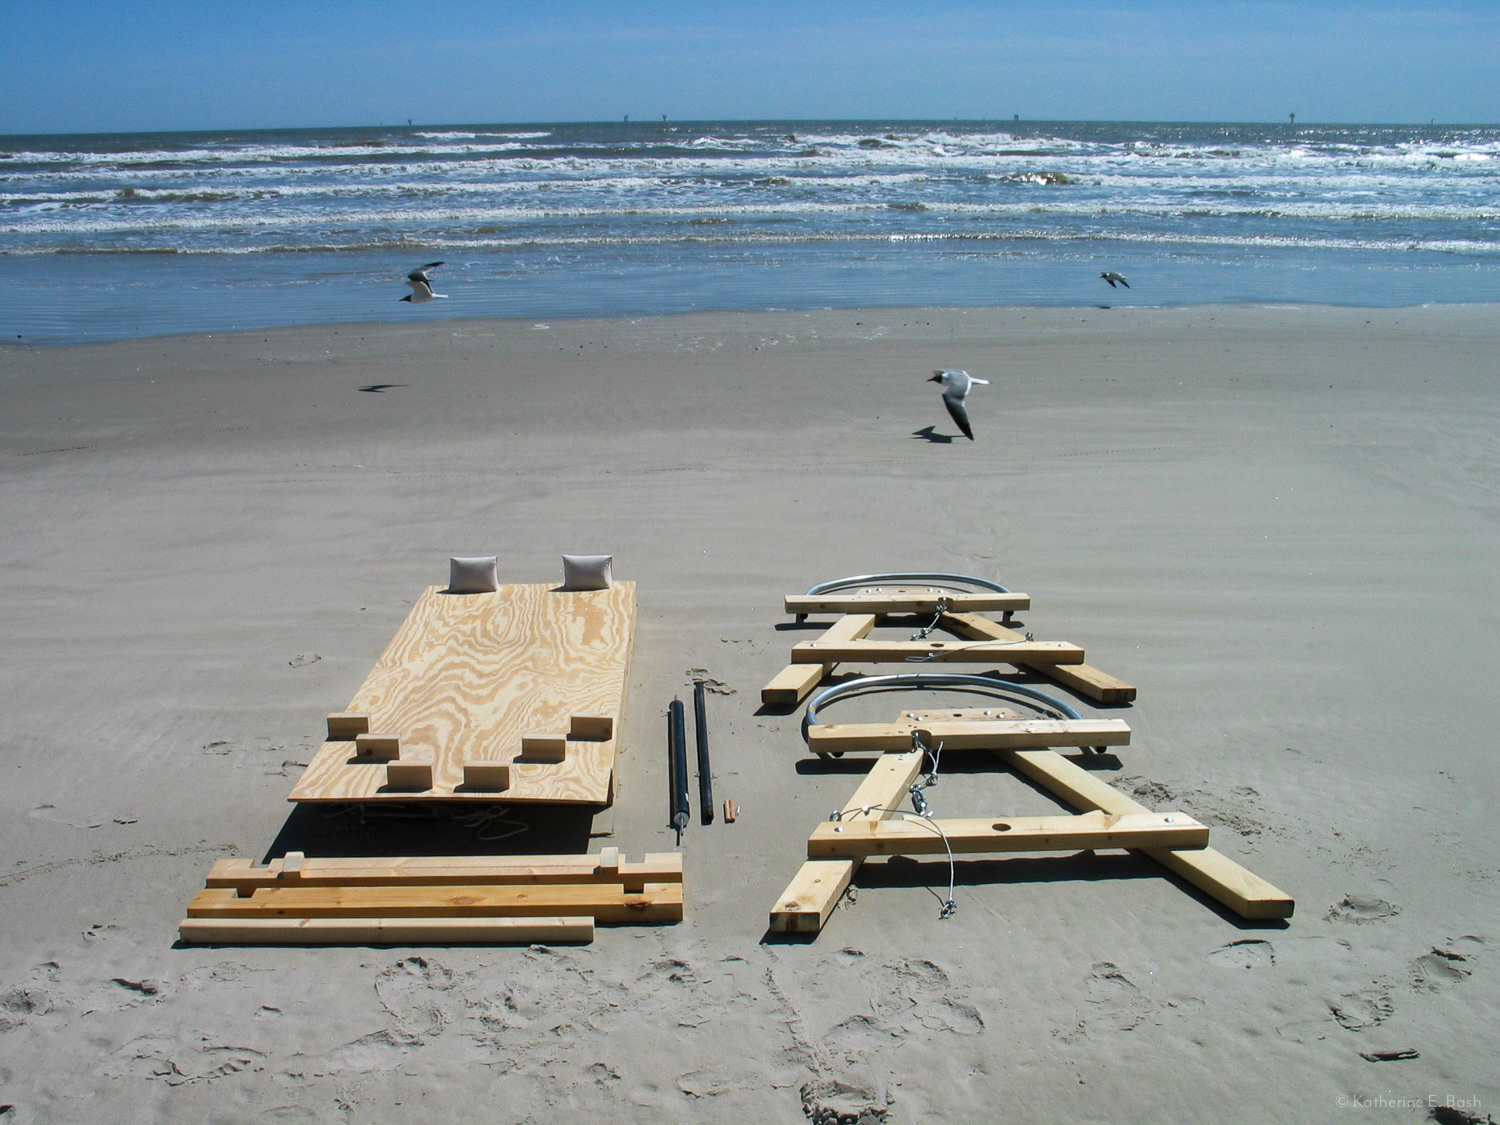 [1]_2003-Blink-Chair-Port-Aransas-Katherine-E-Bash.jpg